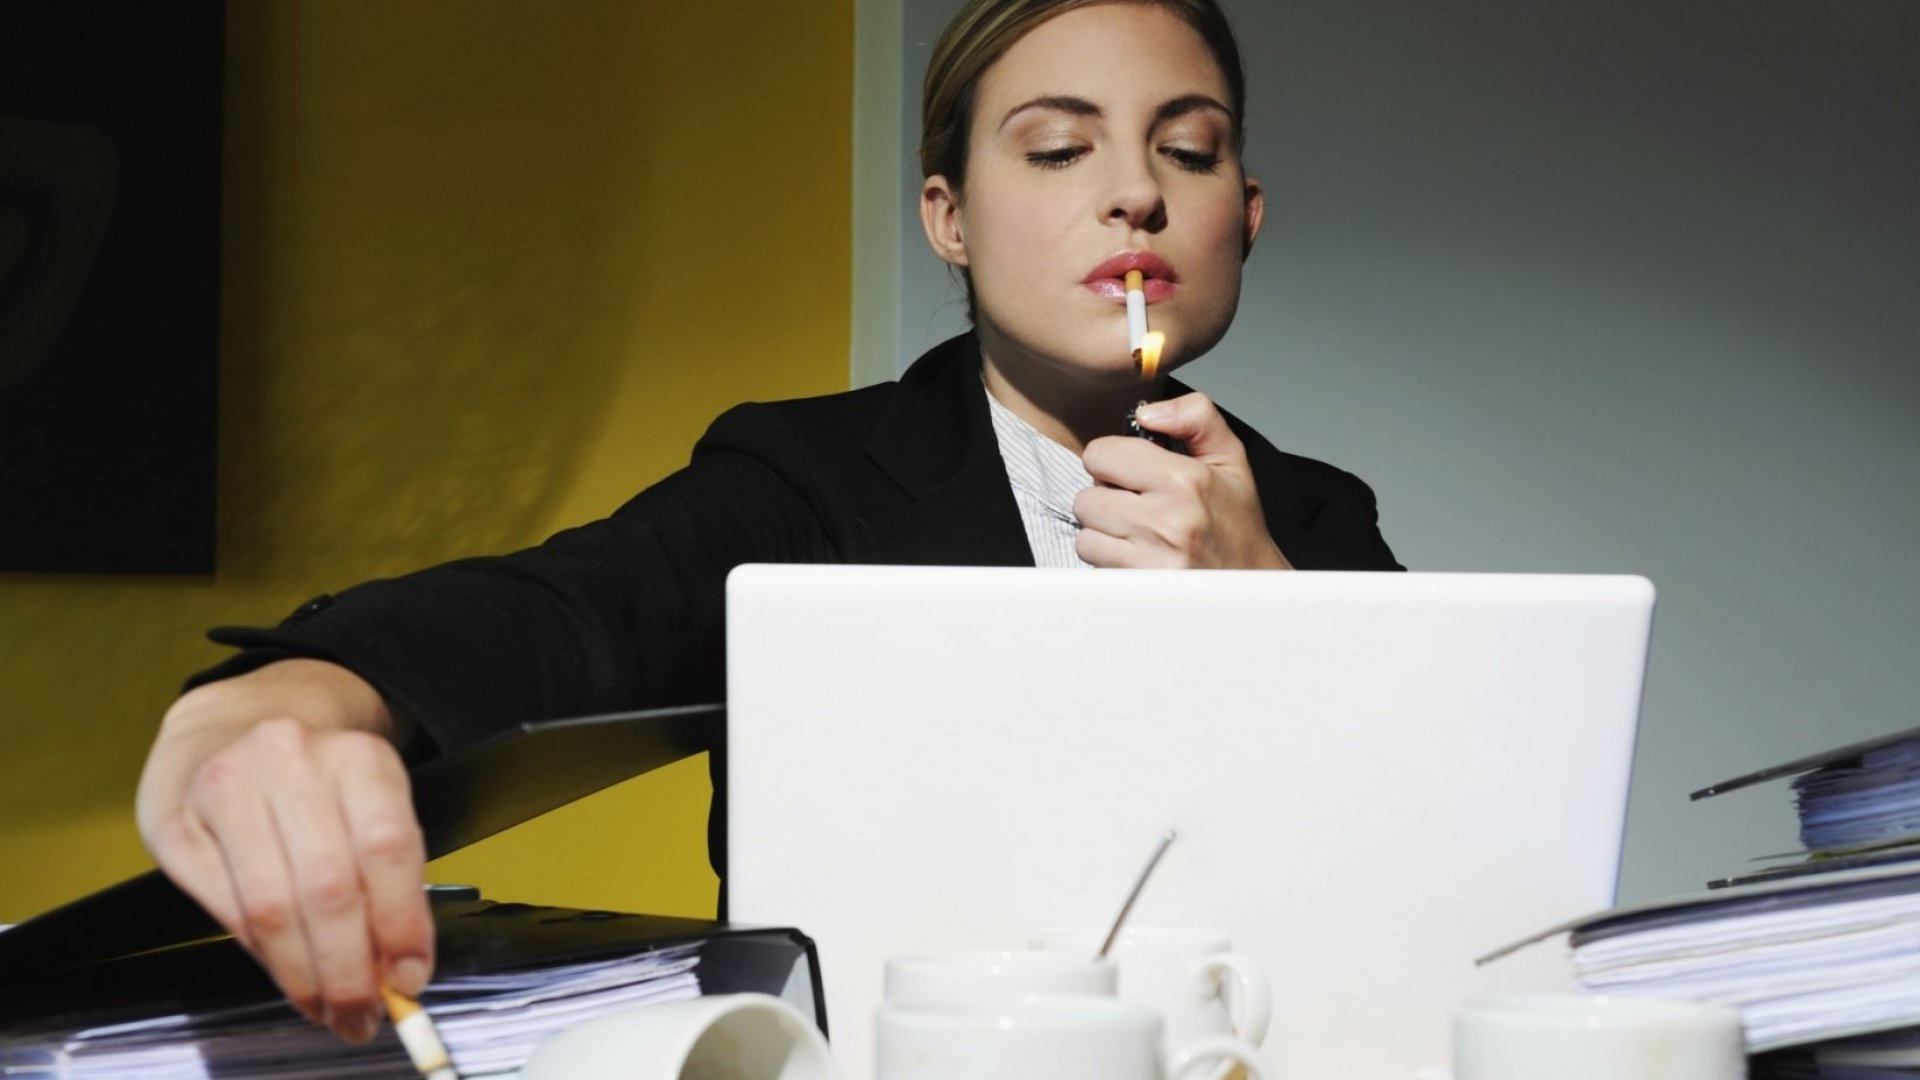 The Real Cost of Highly Stressful Jobs